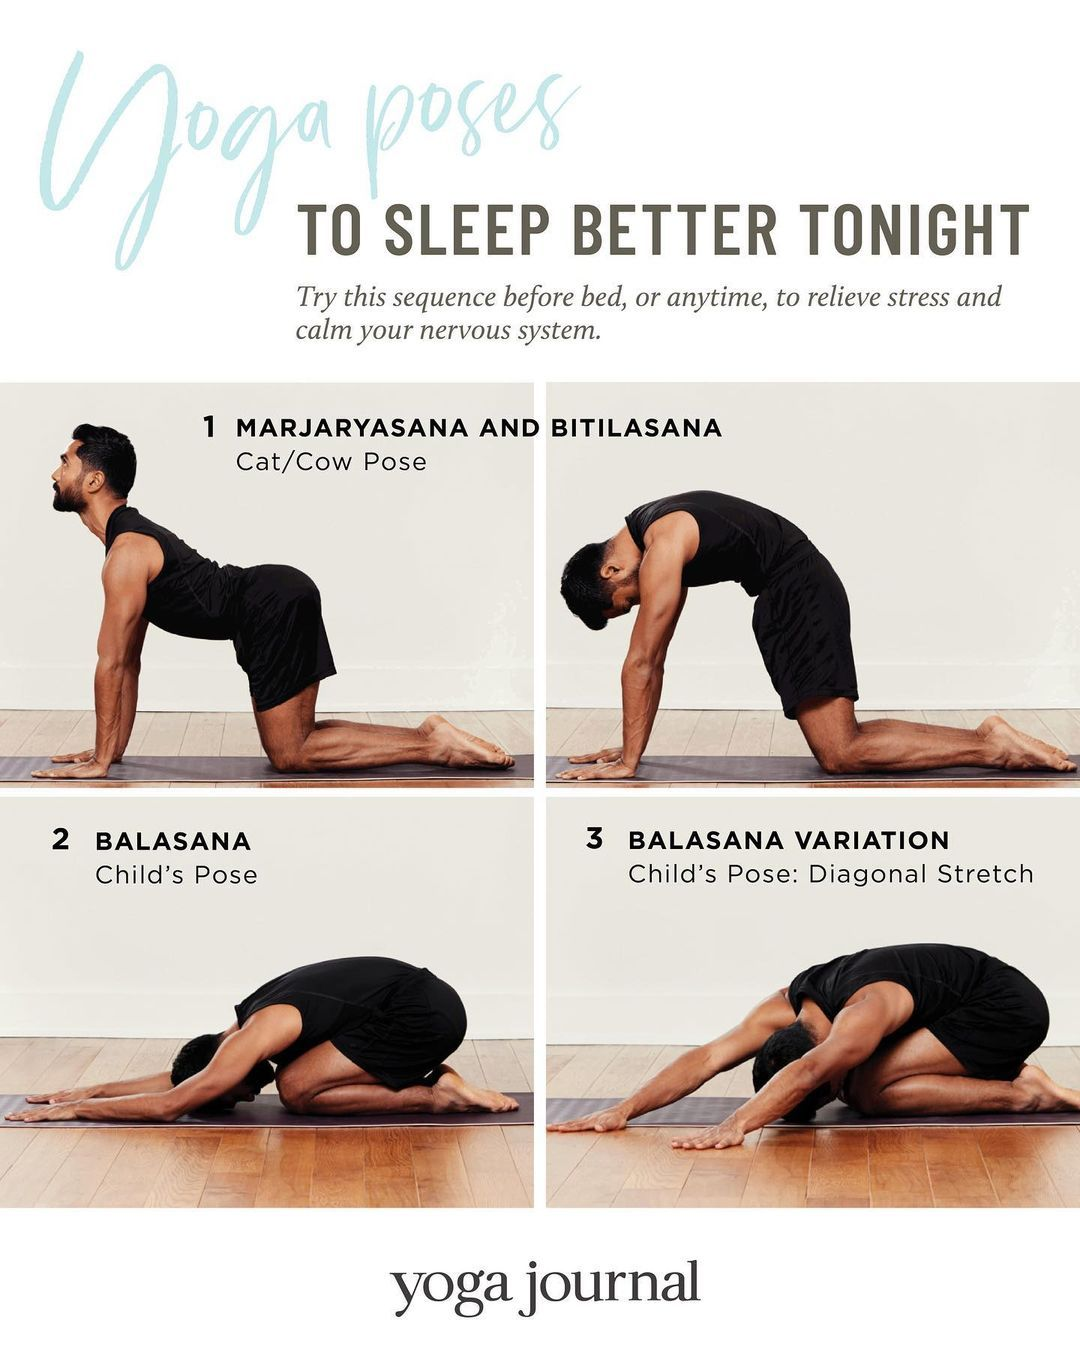 Yoga Journal On Instagram Yoga Poses To Sleep Better Tonight One Of The Reasons That So Many Of Us Find It Hard To Yoga Journal Better Sleep Yoga Poses